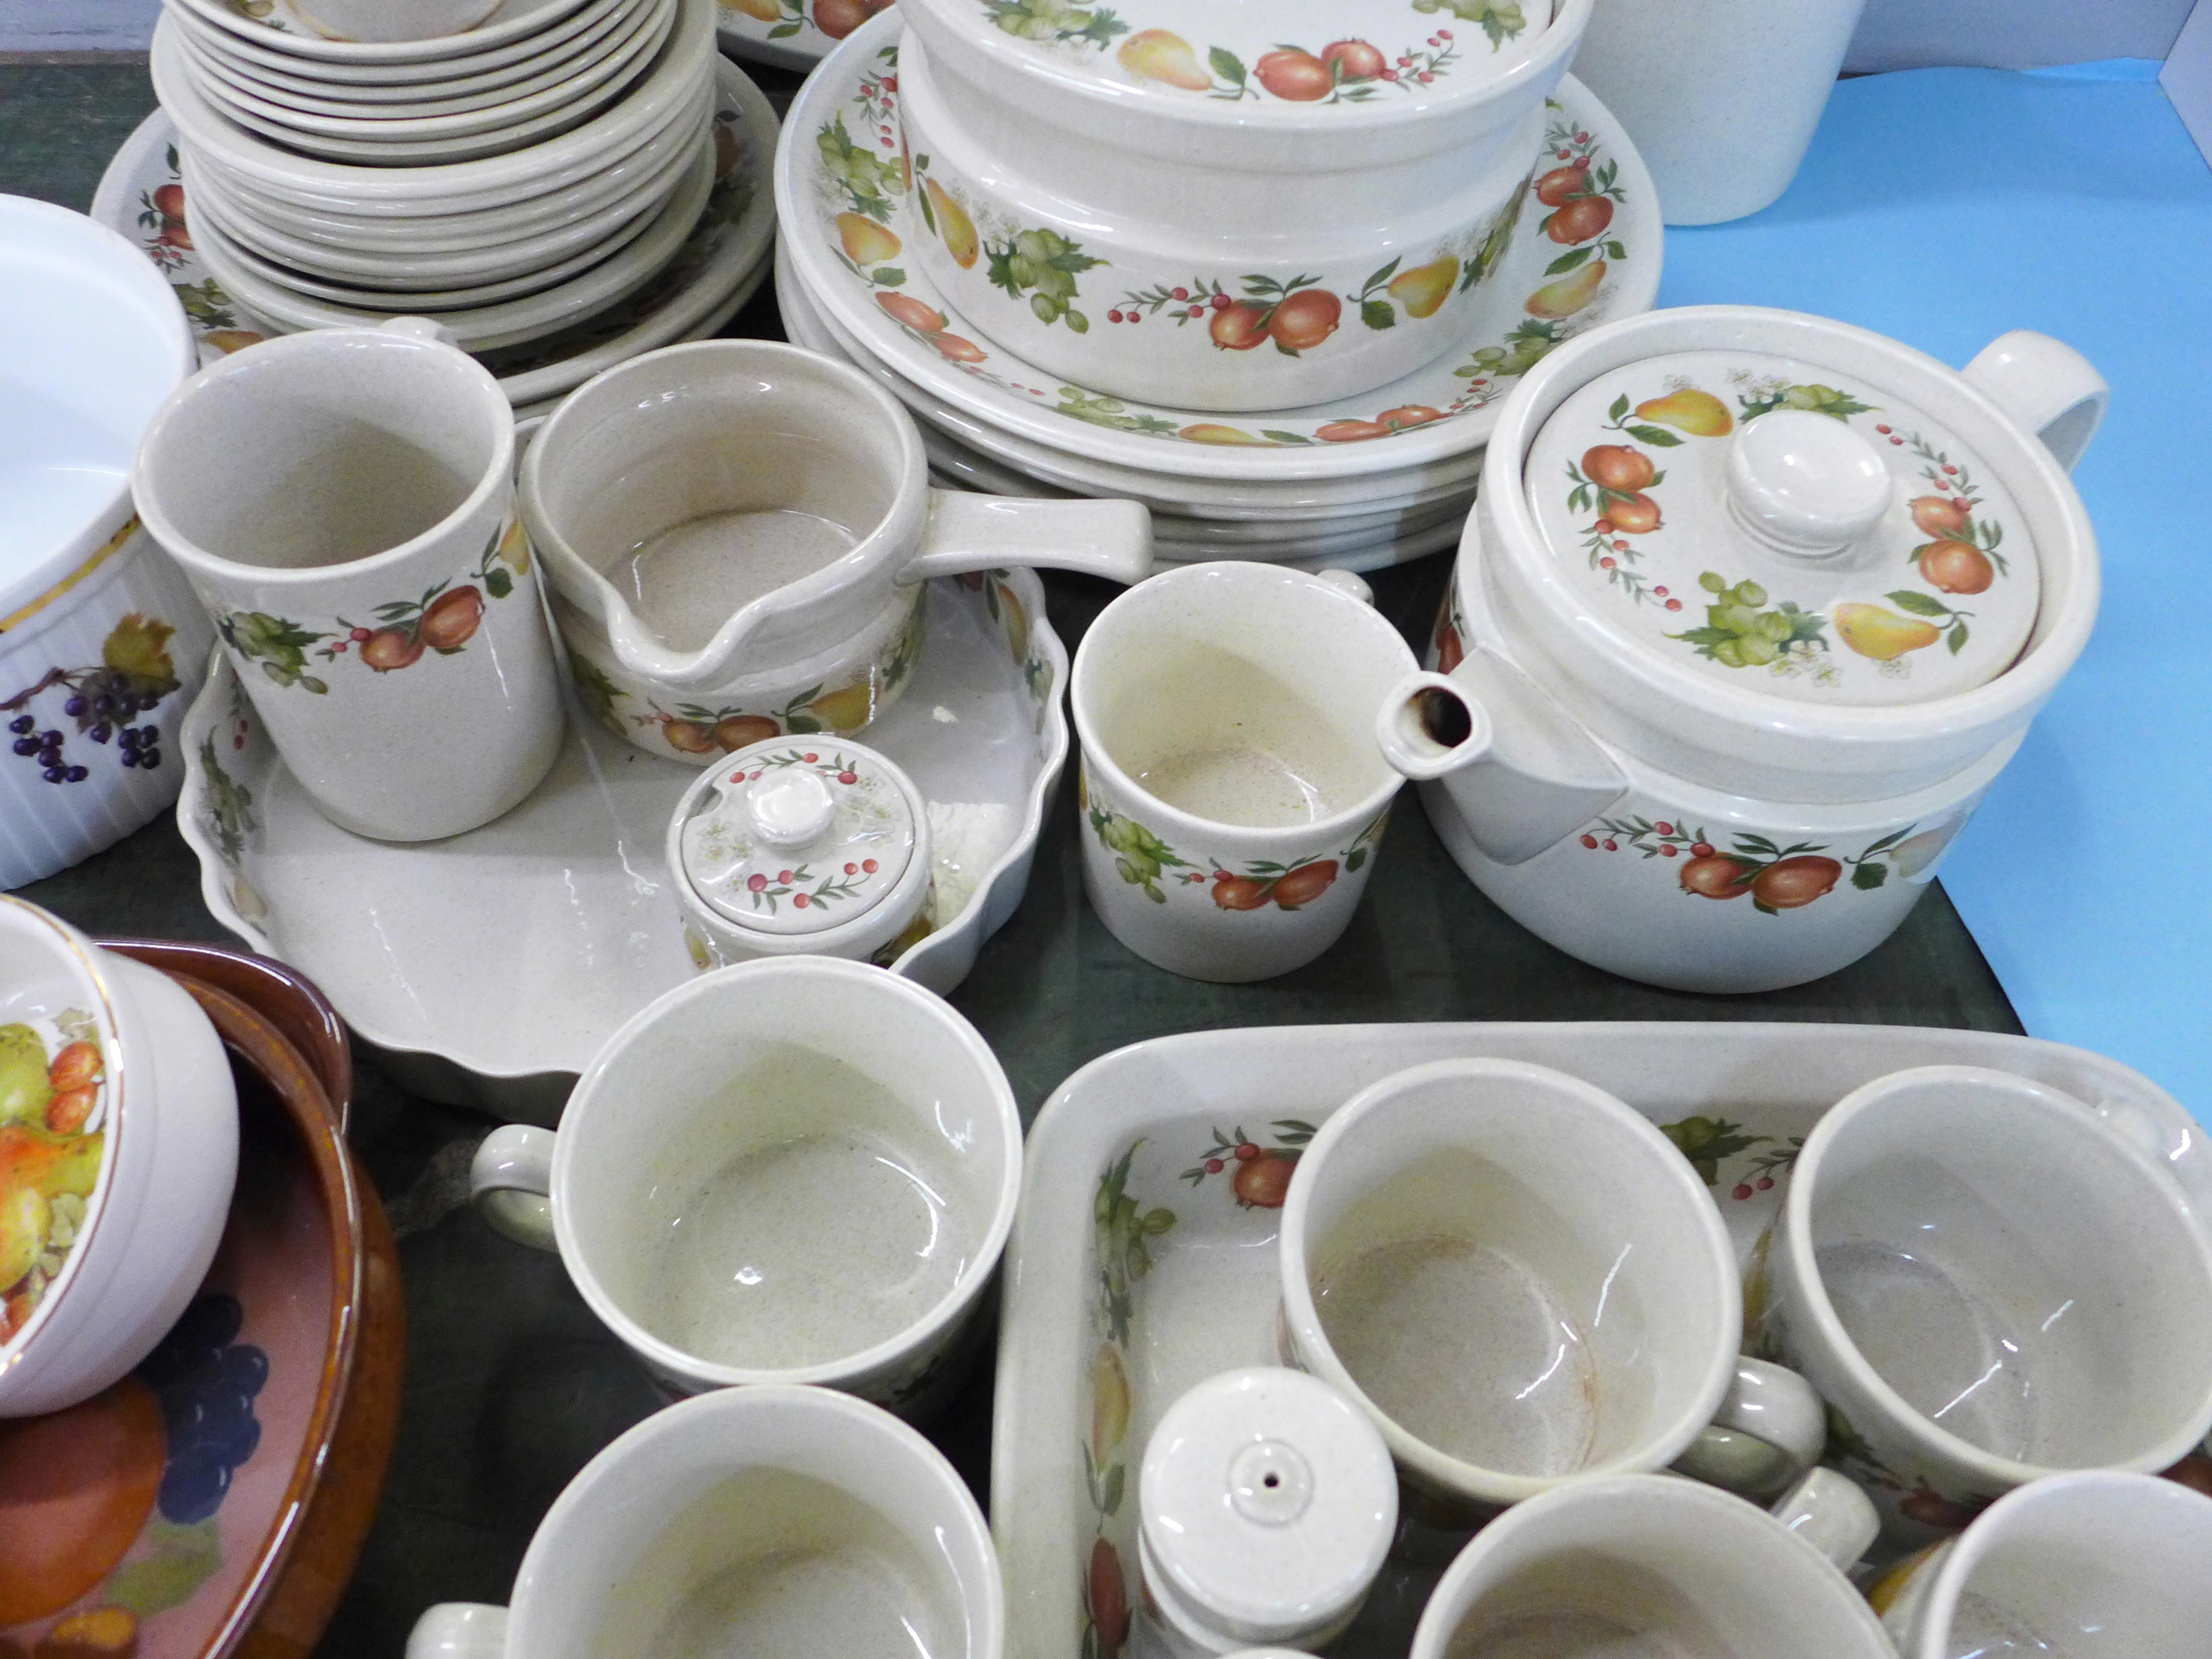 Mixed teawares and tablewares, Wedgwood Quince, Royal Worcester Evesham souffle dish, Denby Autumn - Image 3 of 5